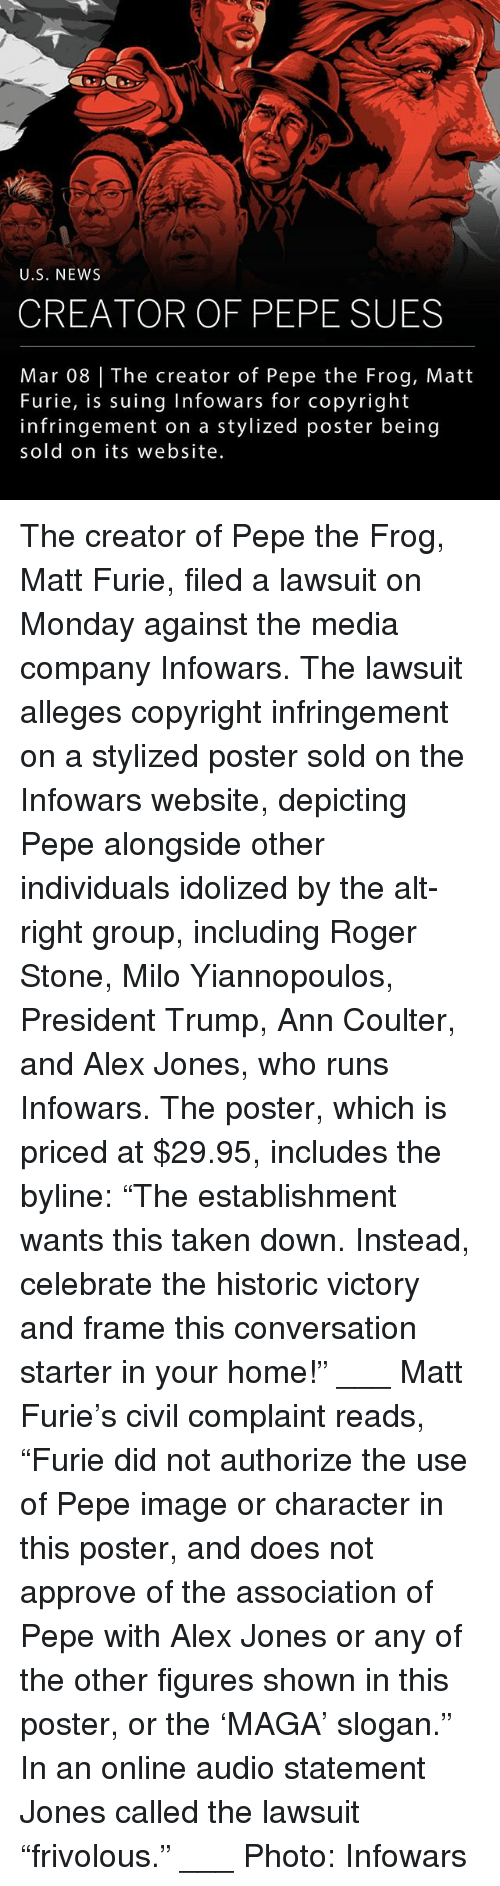 "Memes, News, and Pepe the Frog: U.S. NEWS  CREATOR OF PEPE SUES  Mar 08 The creator of Pepe the Frog, Matt  Furie, is suing Infowars for copyright  infringement on a stylized poster being  sold on its website. The creator of Pepe the Frog, Matt Furie, filed a lawsuit on Monday against the media company Infowars. The lawsuit alleges copyright infringement on a stylized poster sold on the Infowars website, depicting Pepe alongside other individuals idolized by the alt-right group, including Roger Stone, Milo Yiannopoulos, President Trump, Ann Coulter, and Alex Jones, who runs Infowars. The poster, which is priced at $29.95, includes the byline: ""The establishment wants this taken down. Instead, celebrate the historic victory and frame this conversation starter in your home!"" ___ Matt Furie's civil complaint reads, ""Furie did not authorize the use of Pepe image or character in this poster, and does not approve of the association of Pepe with Alex Jones or any of the other figures shown in this poster, or the 'MAGA' slogan."" In an online audio statement Jones called the lawsuit ""frivolous."" ___ Photo: Infowars"